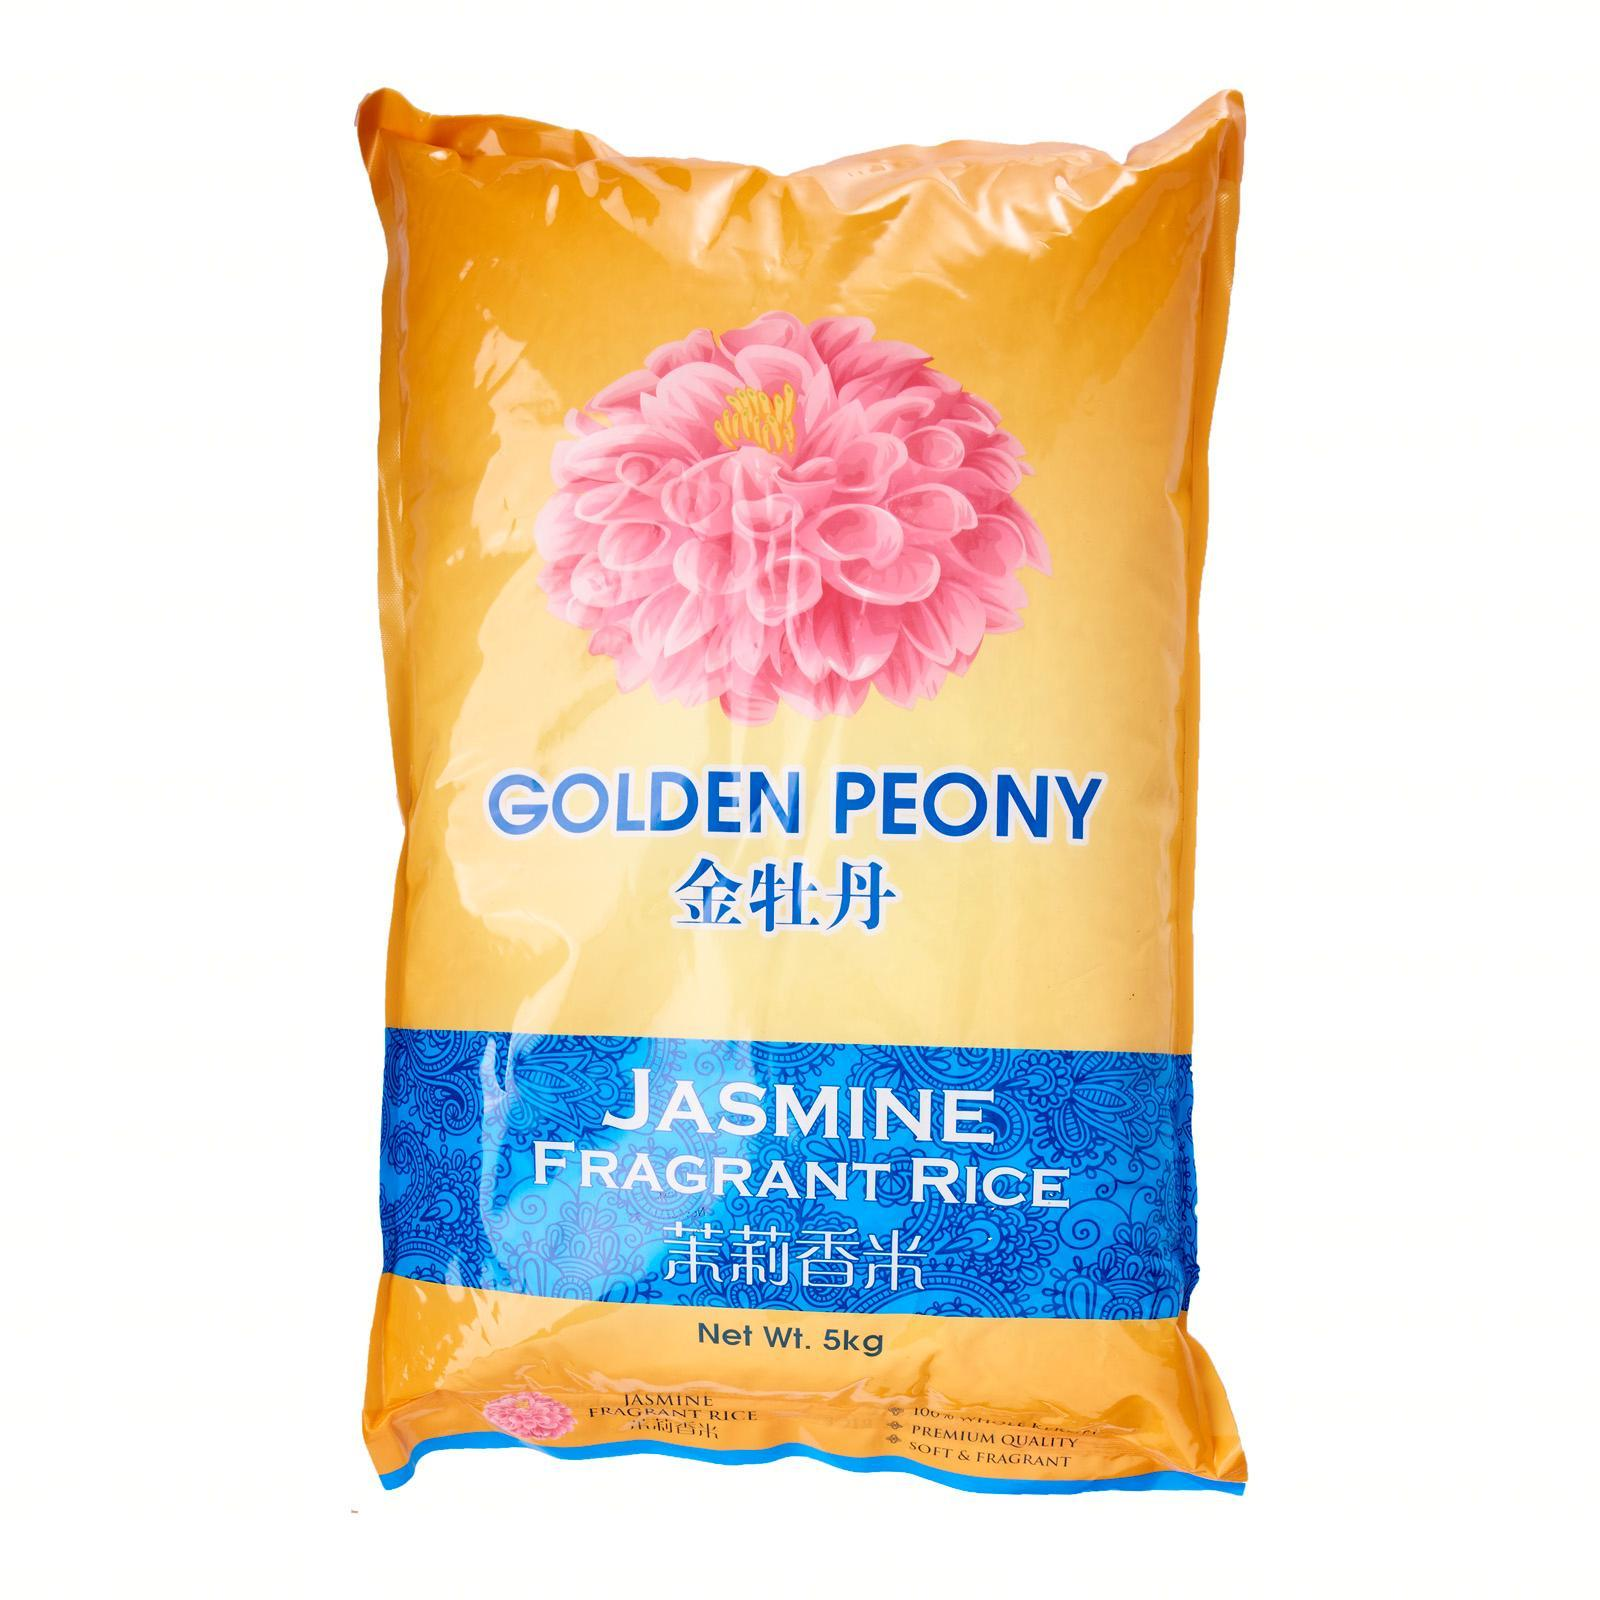 Golden Peony Jasmine Rice By Redmart.